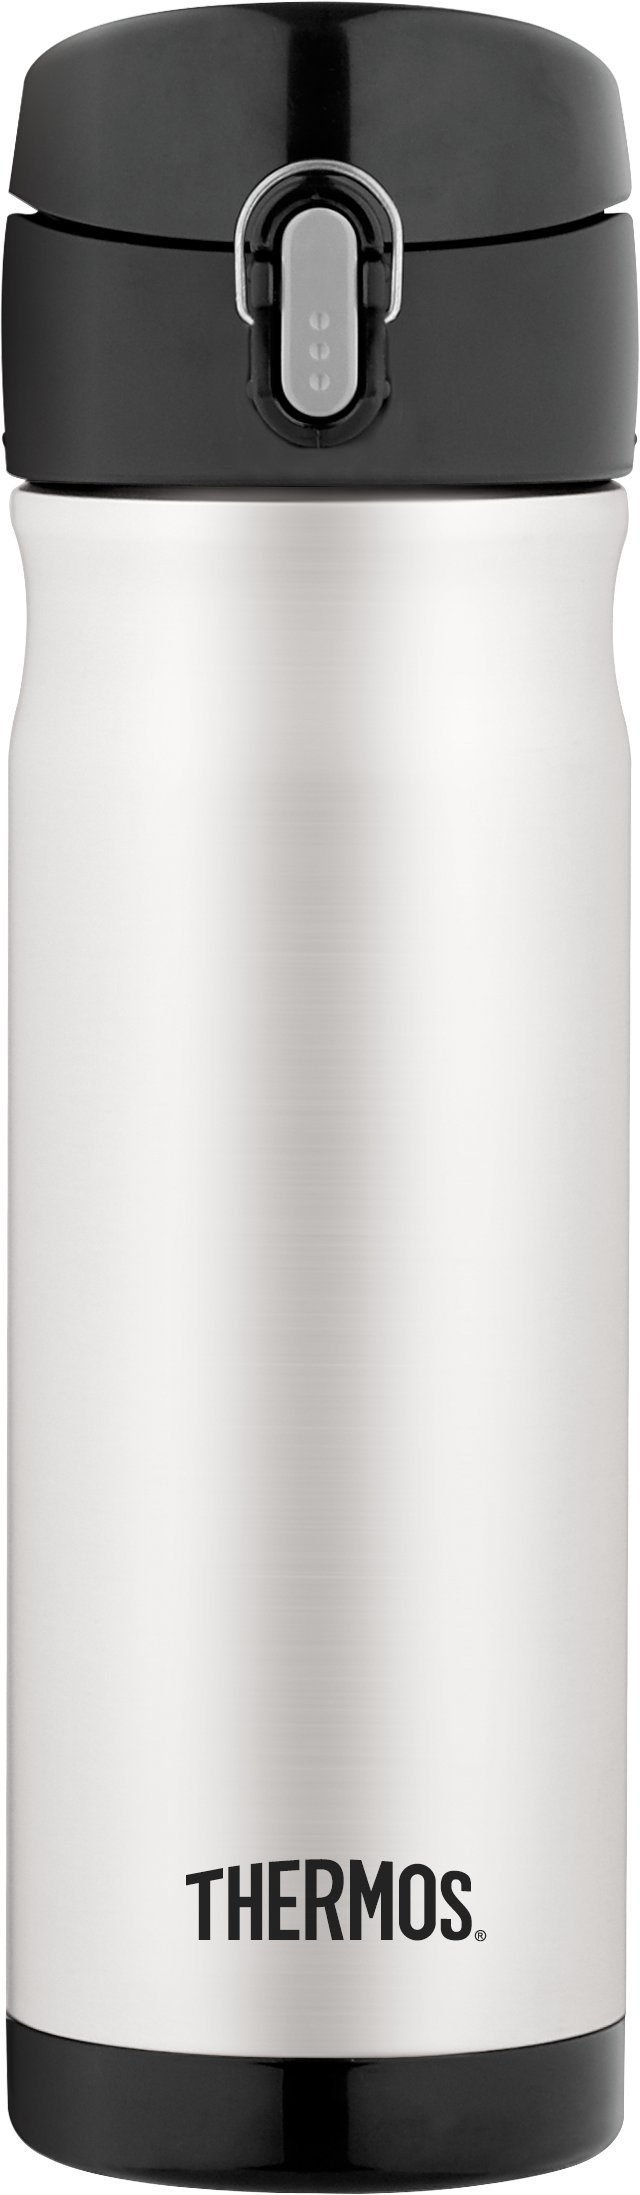 Thermos 16 Ounce Stainless Steel Commuter Bottle, Stainless Steel by Thermos